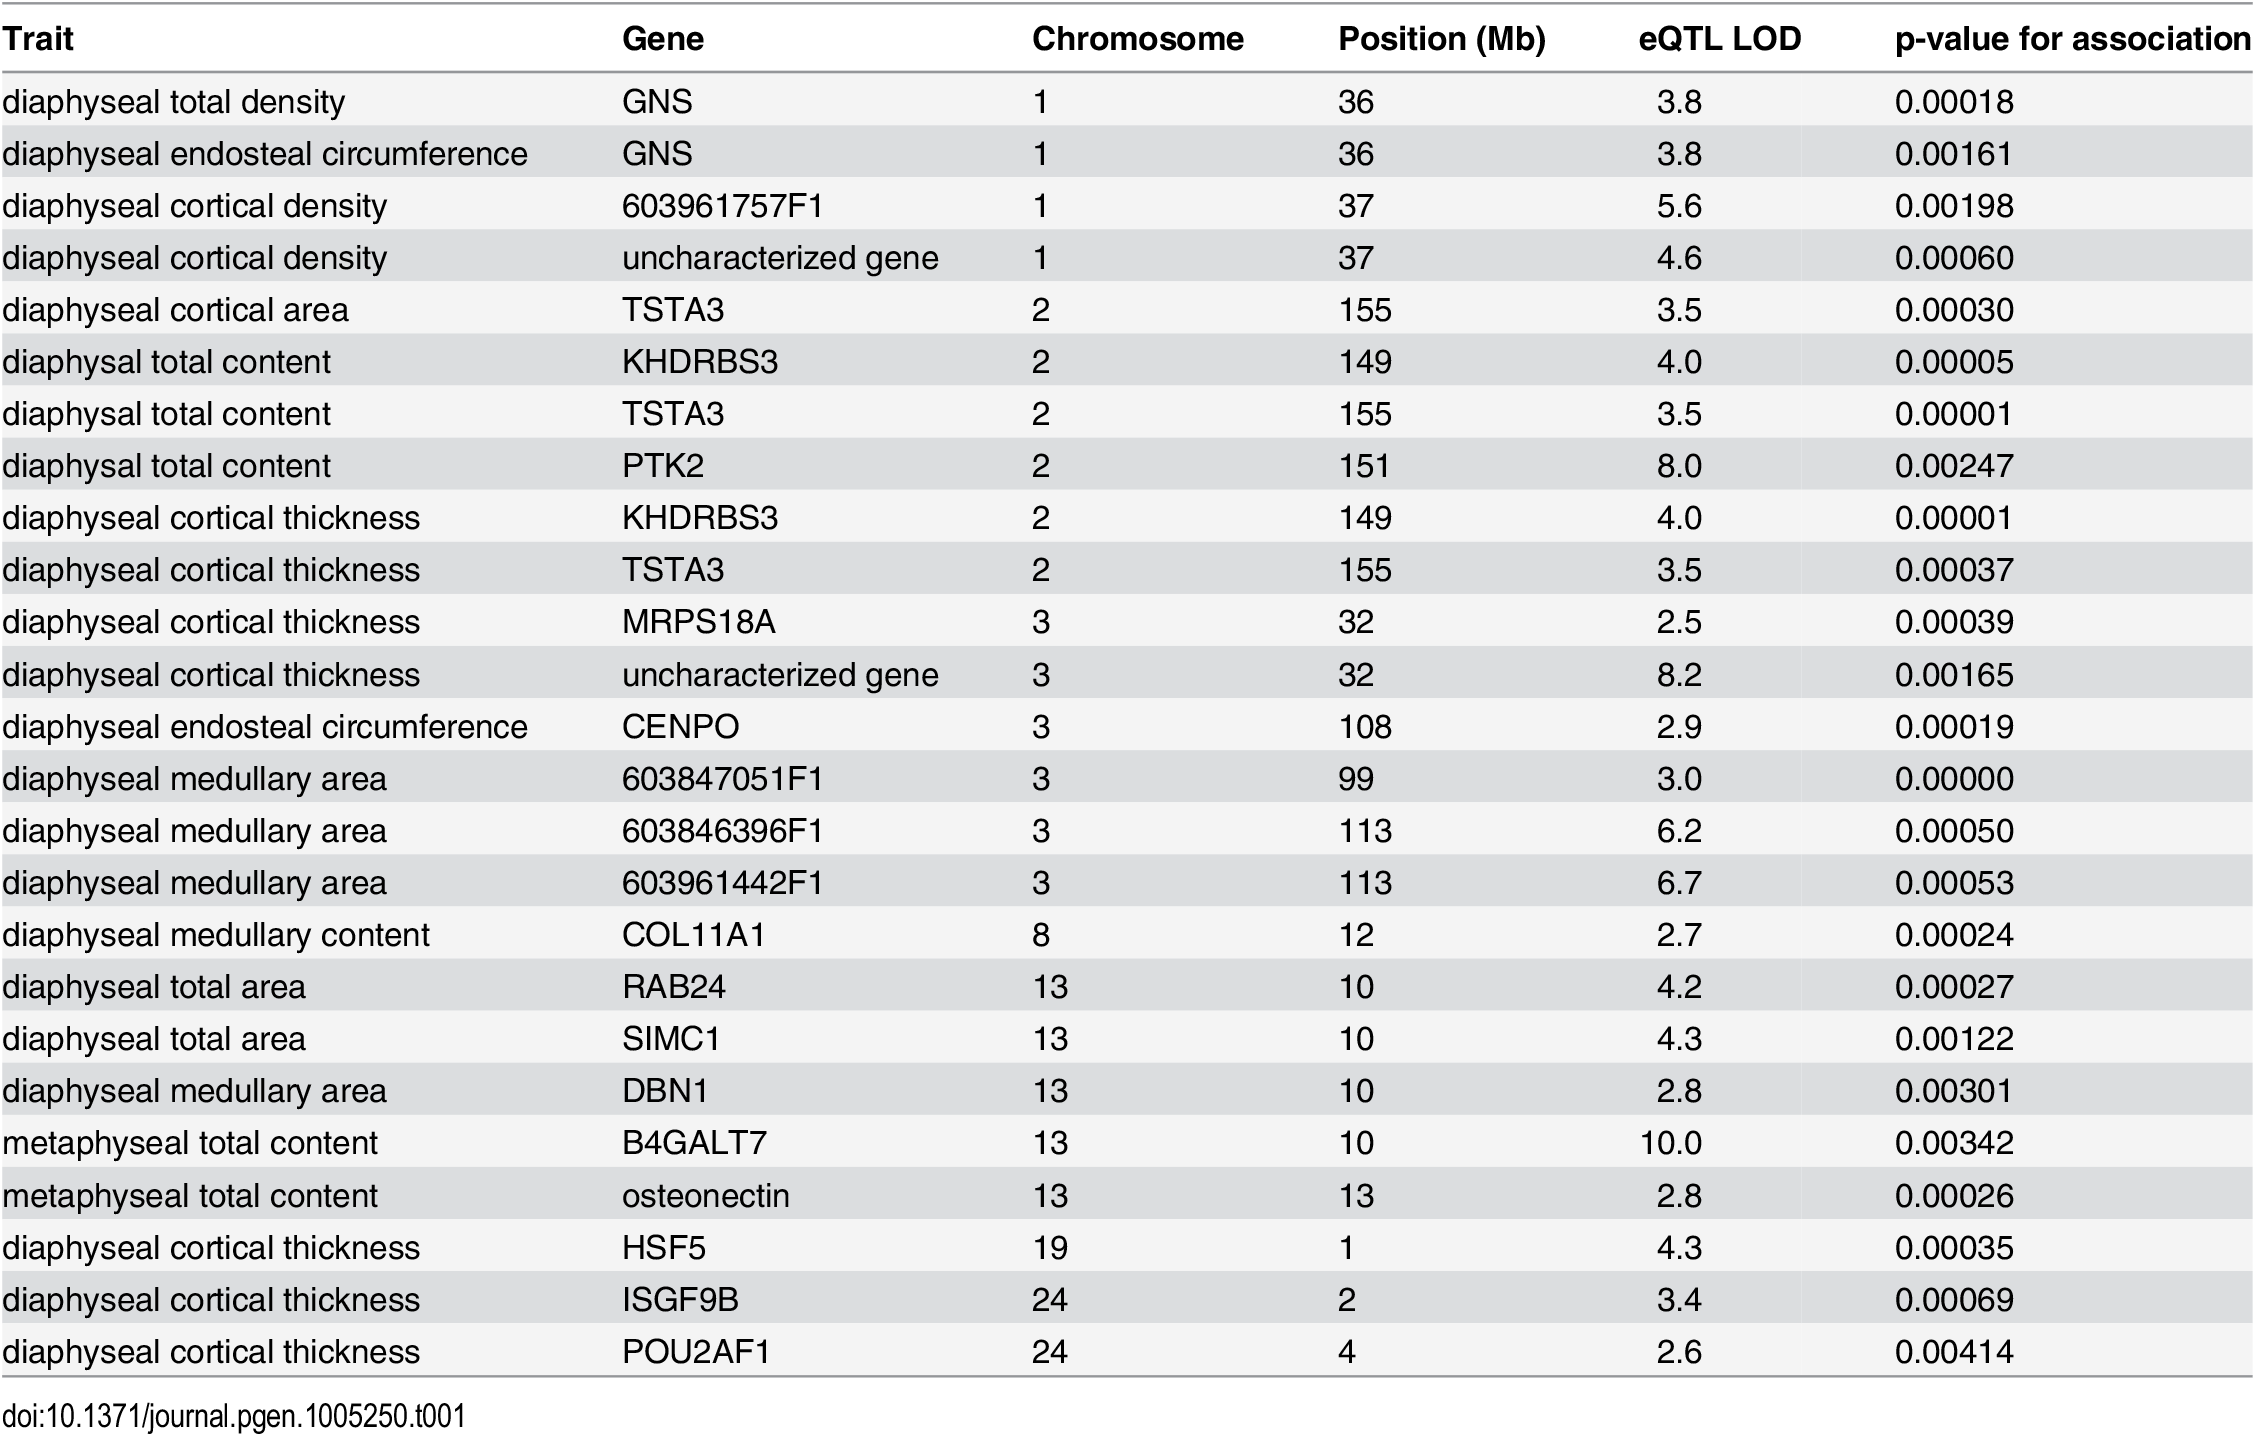 Table of high-confidence candidate eQTL with location of the gene, LOD score, and p-value for association between gene expression and bone trait.